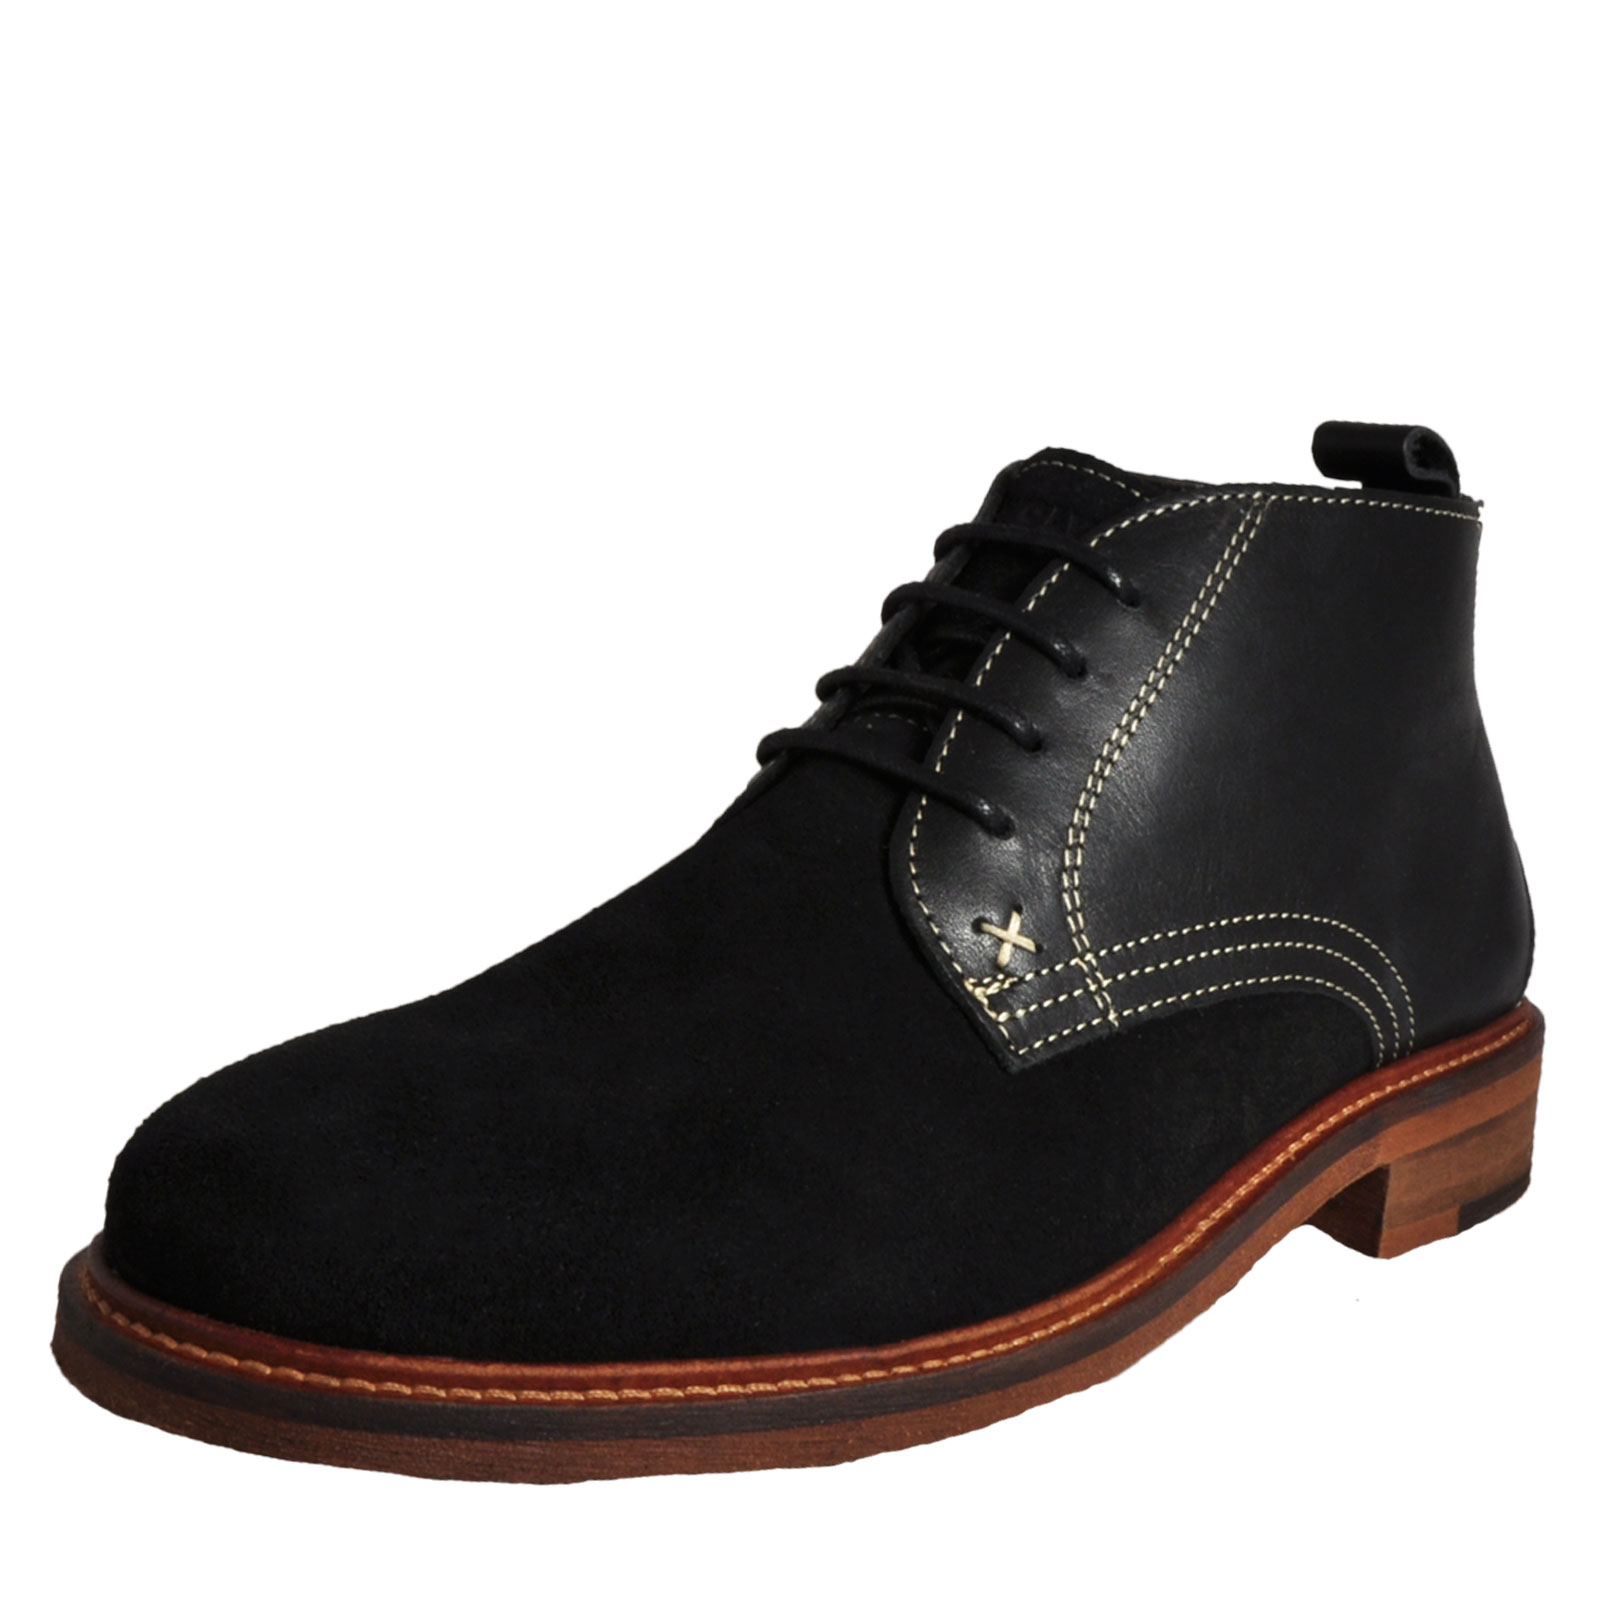 Details about Wolverine 1883 Hensel Men s Classic Suede Leather Chukka  Desert Boots Black 20197cc90